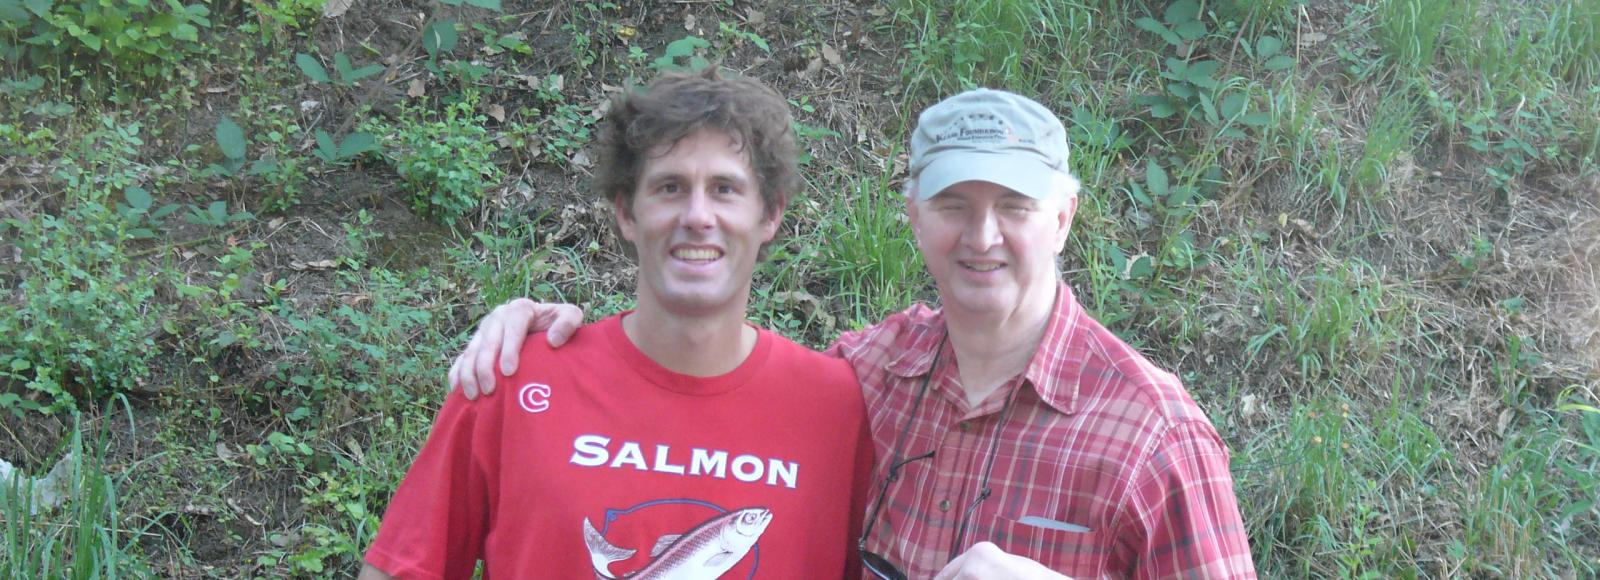 two men stand outside, one wearing a salmon nation bright red T-shirt